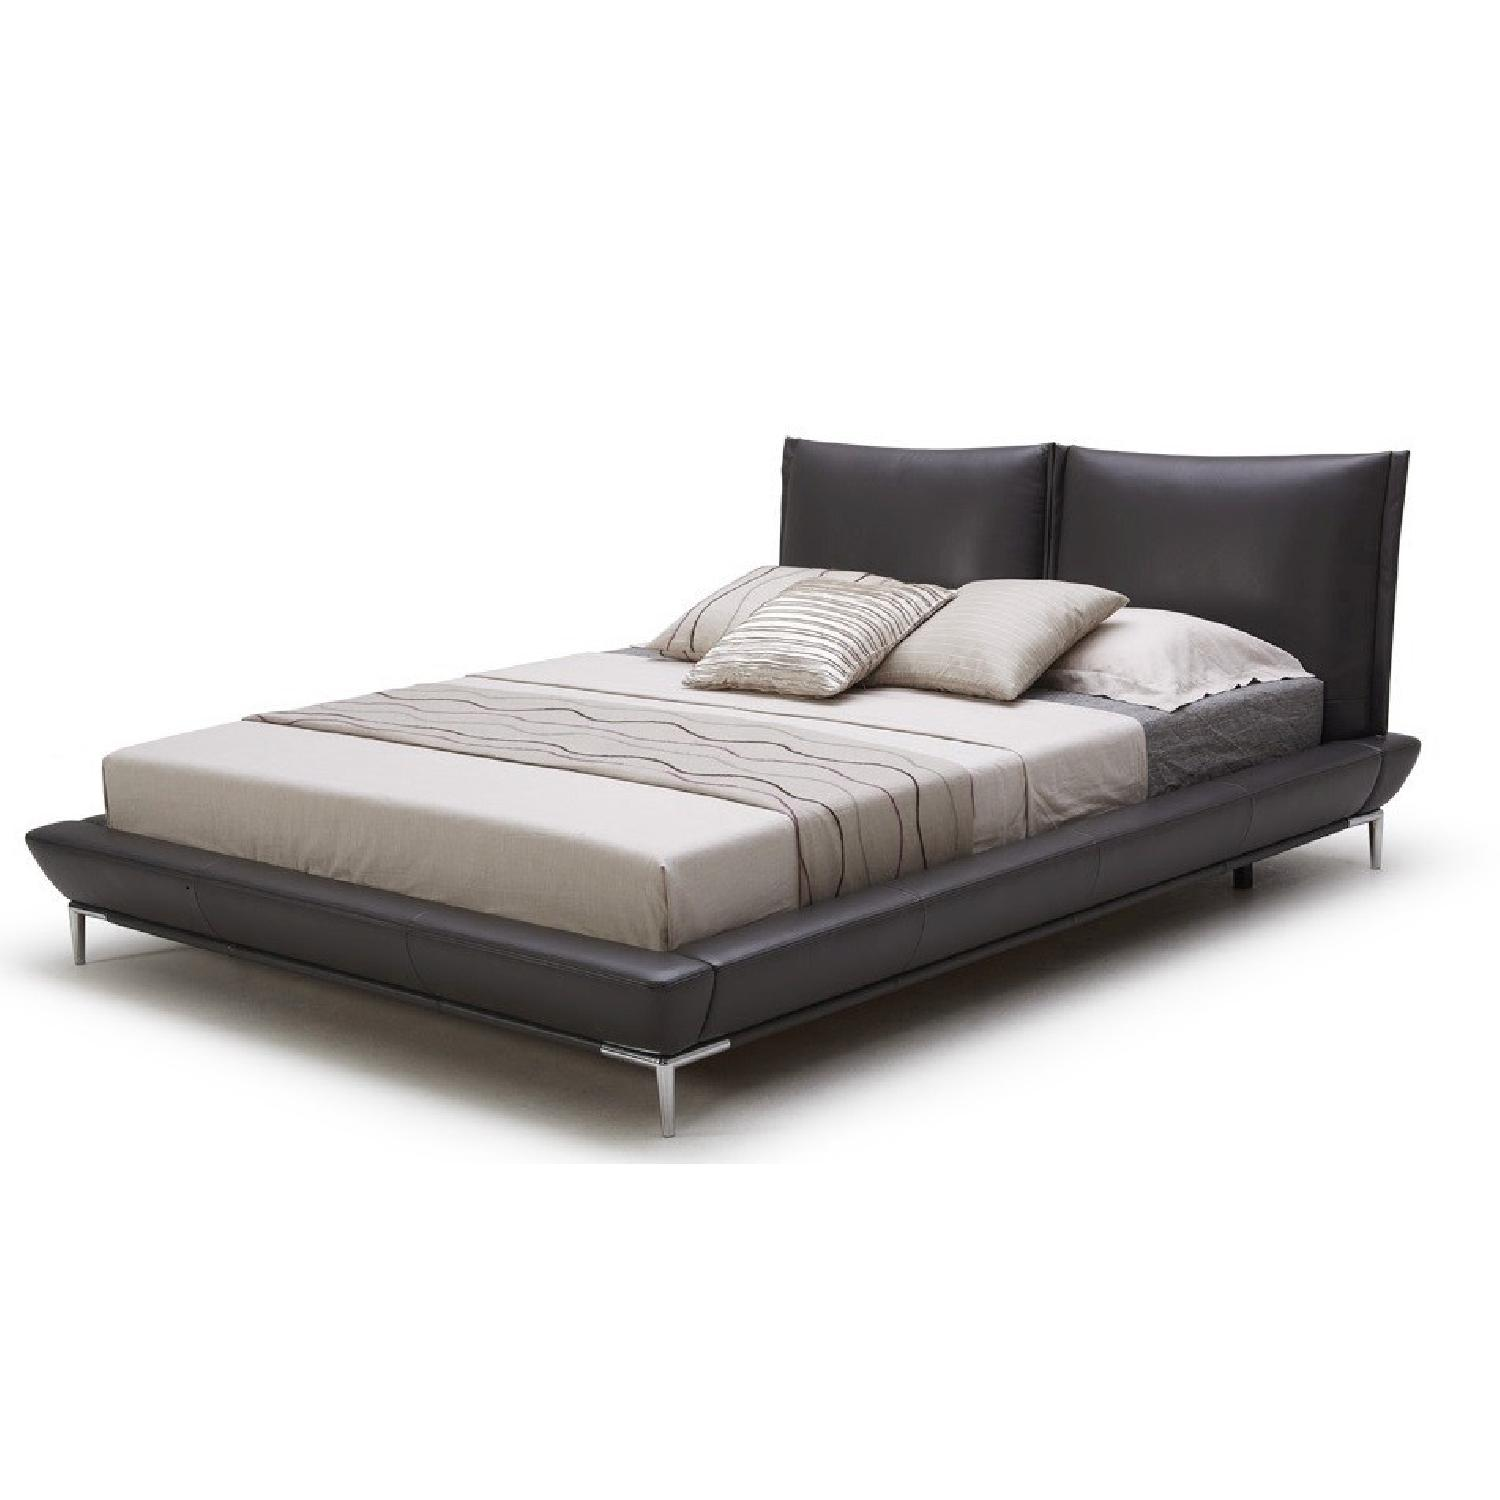 Queen Size Modern Full Leather Platform Bed w/ Padded Headboard in Dark Graphite